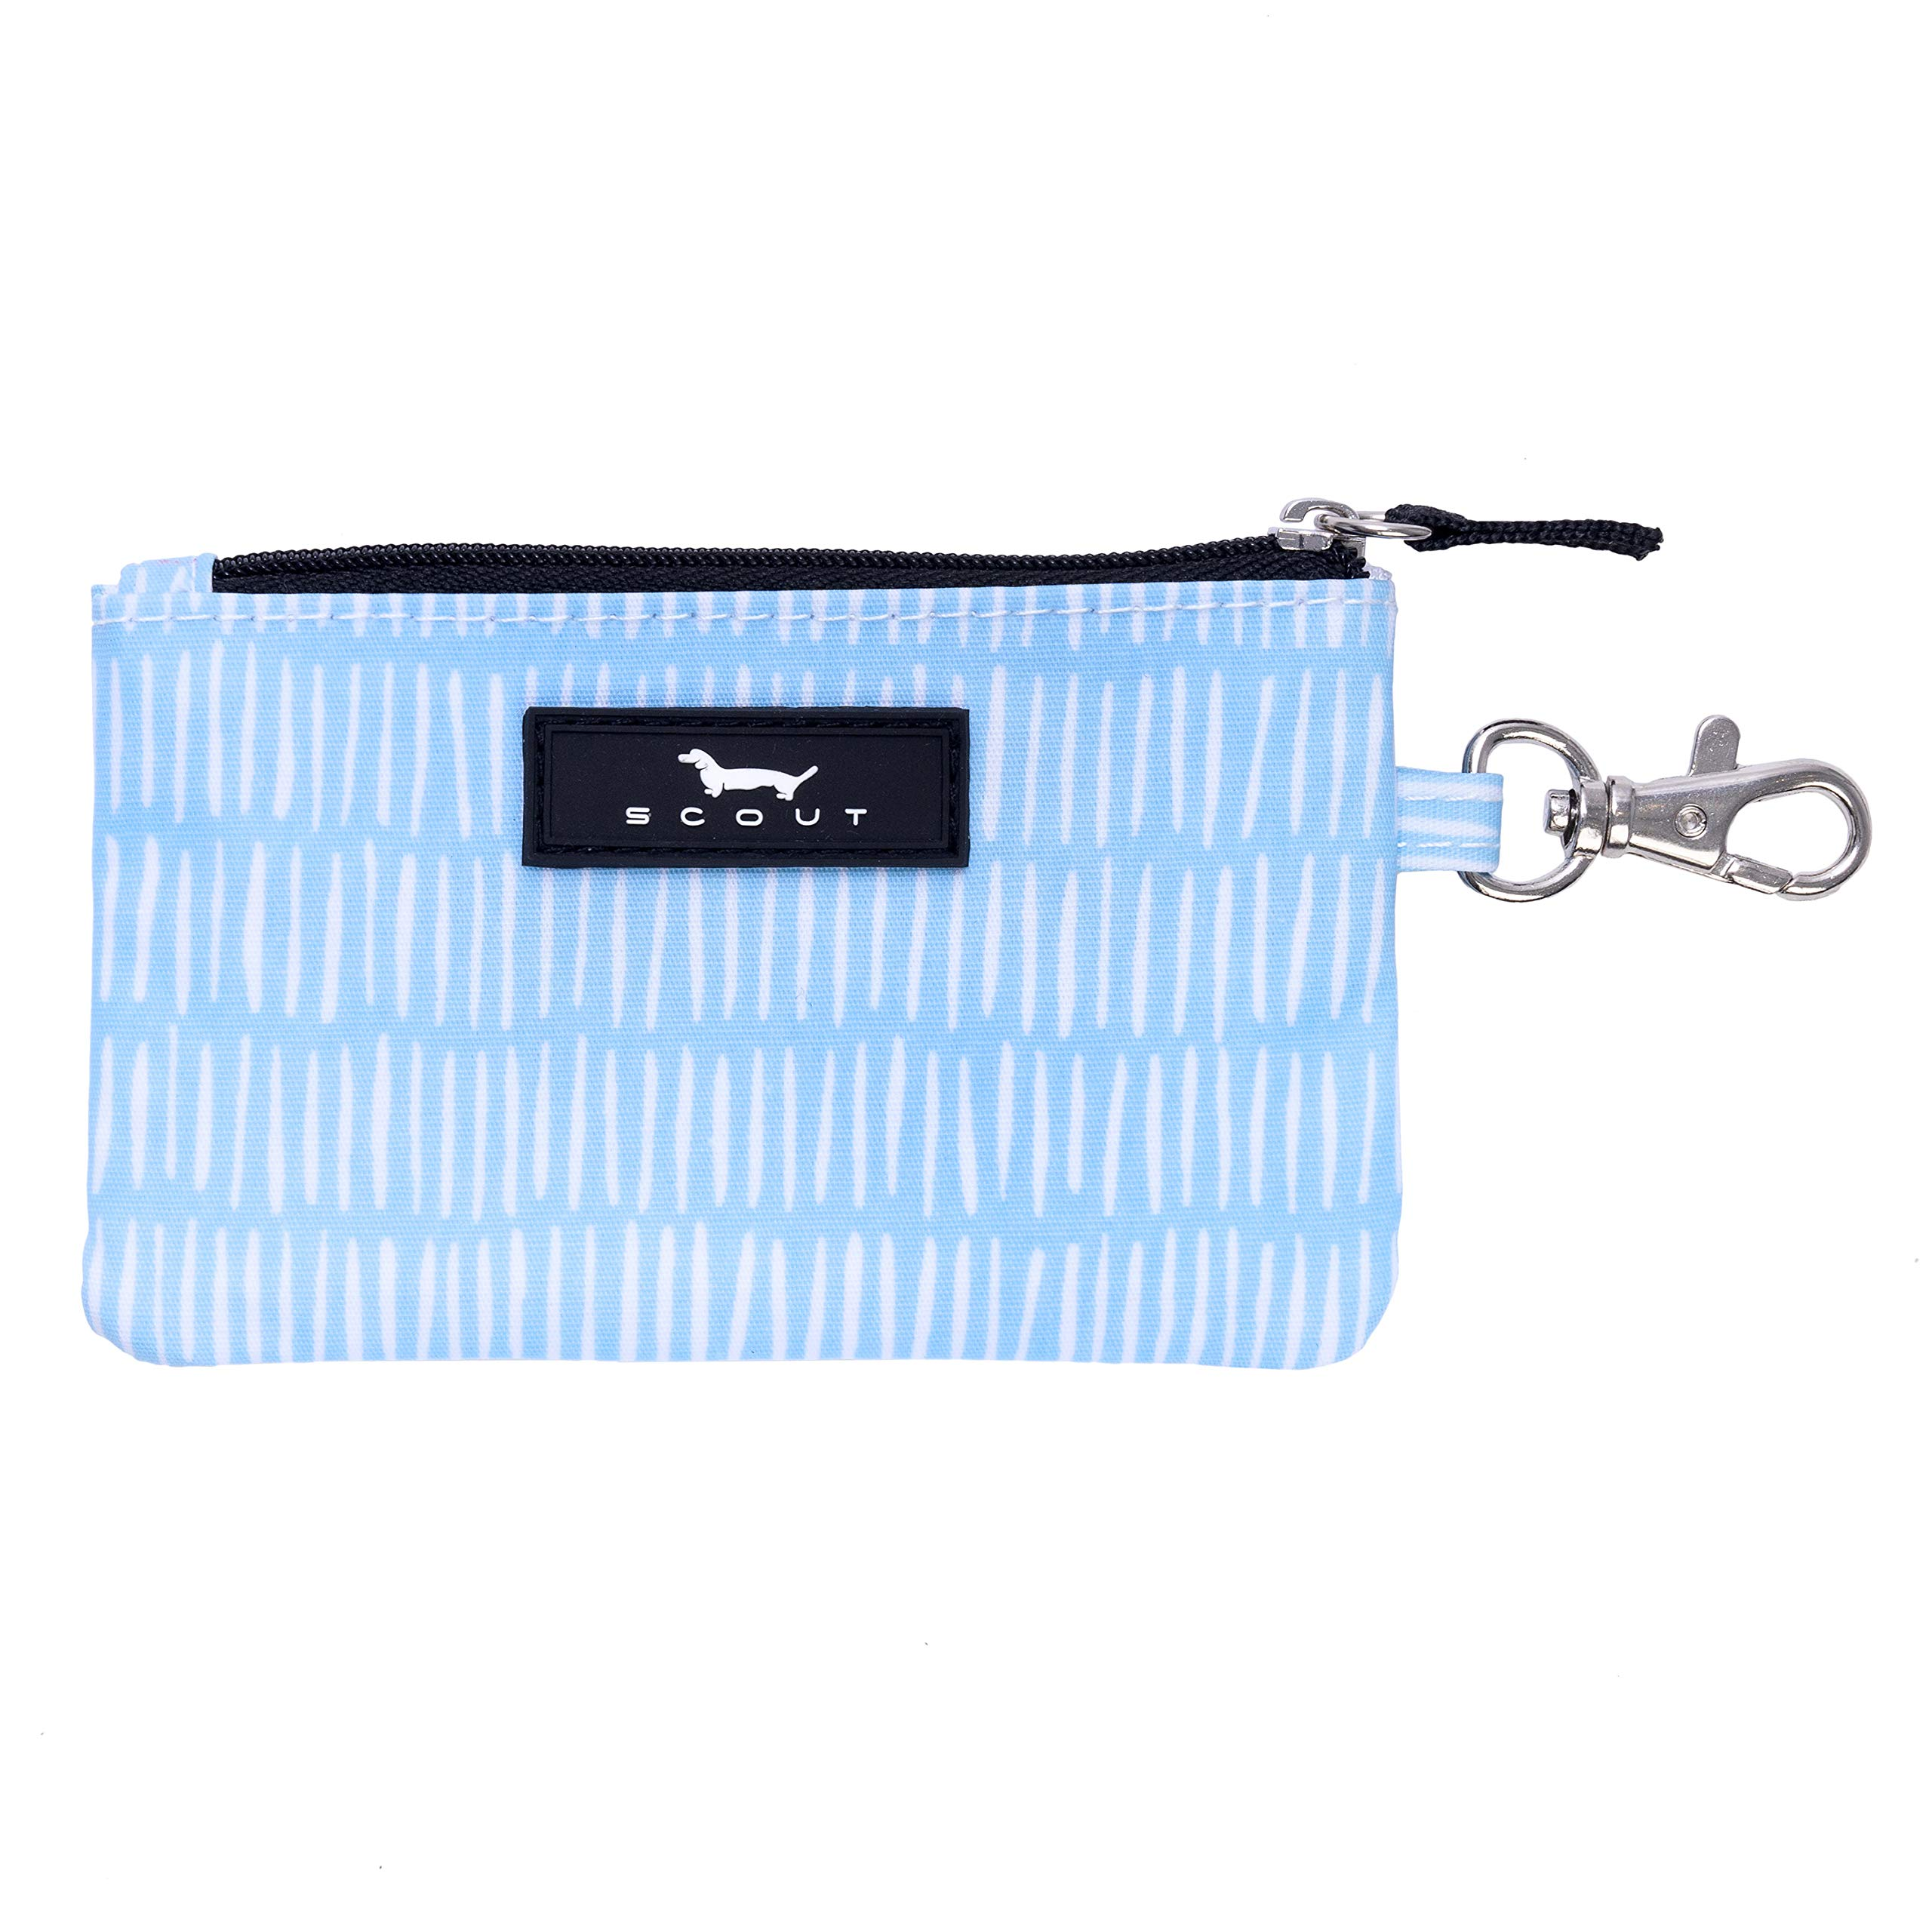 SCOUT IDKase Card Holder or Wallet, ID Holder Window, Key Clasp, Water Resistant, Zips Closed, Tally Girl